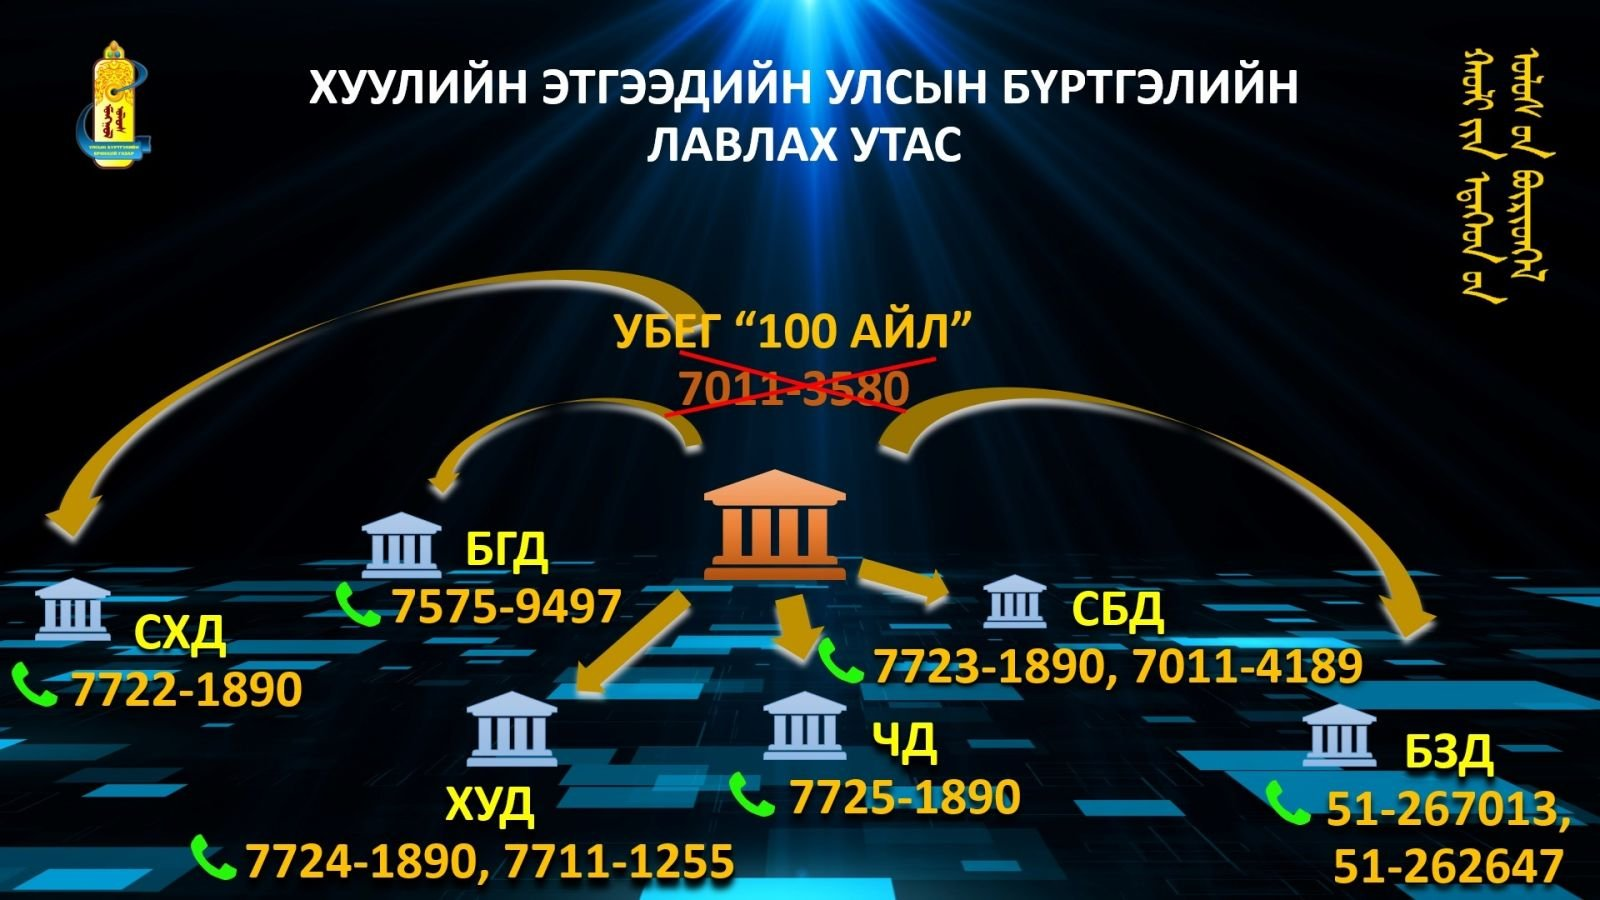 Citizens are able to receive the service of state registration of legal entity and its references at districts